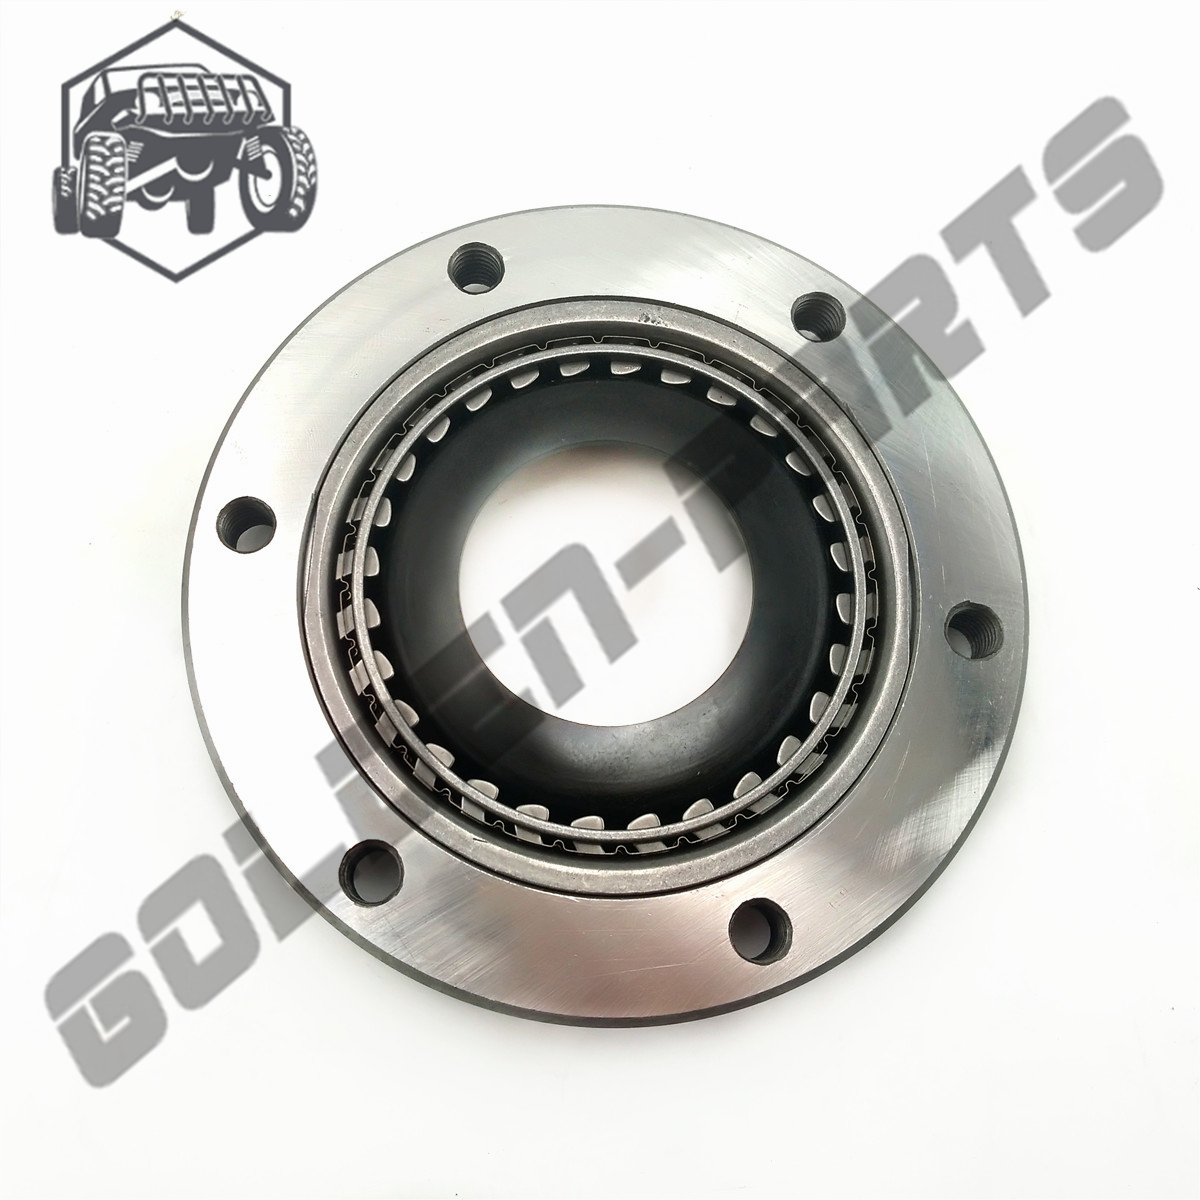 Atv 500cc OVERRIDING CLUTCH For 188 ATV X5 0180-091200 ATV Quad Dune Buggy Parts Accessories